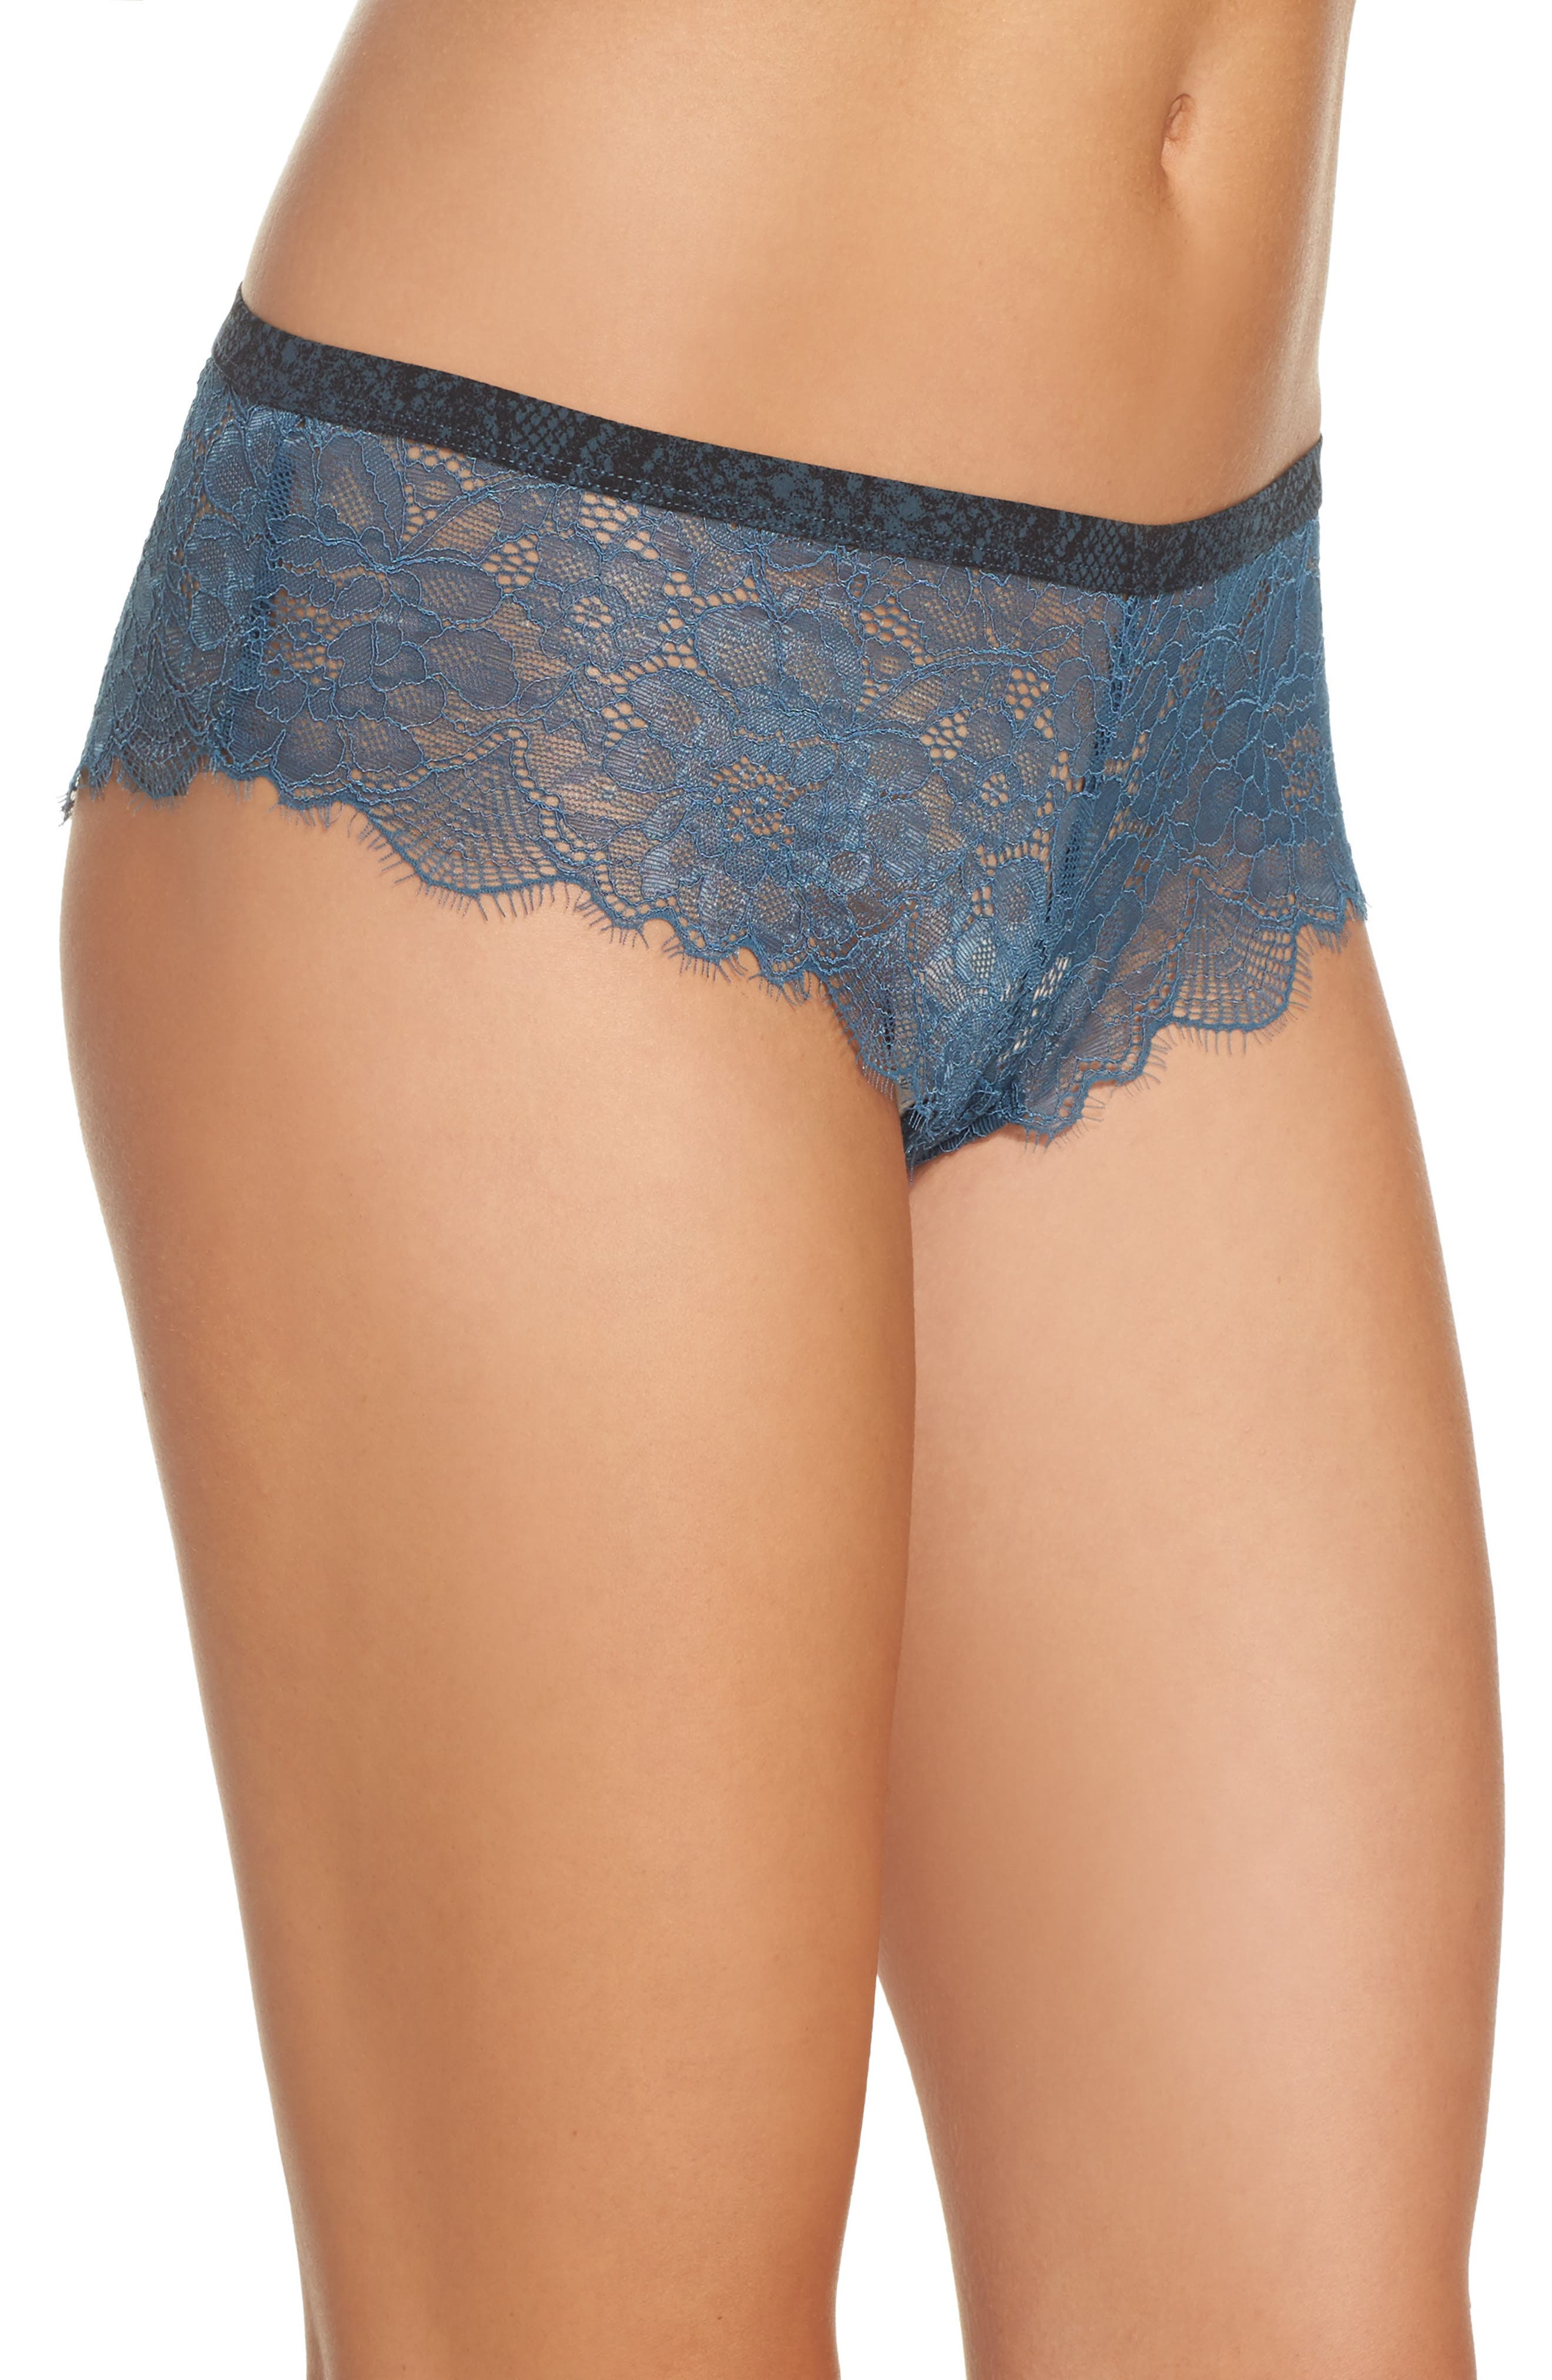 Alternate Image 3  - Love Stories Dragonfly Lace Panties